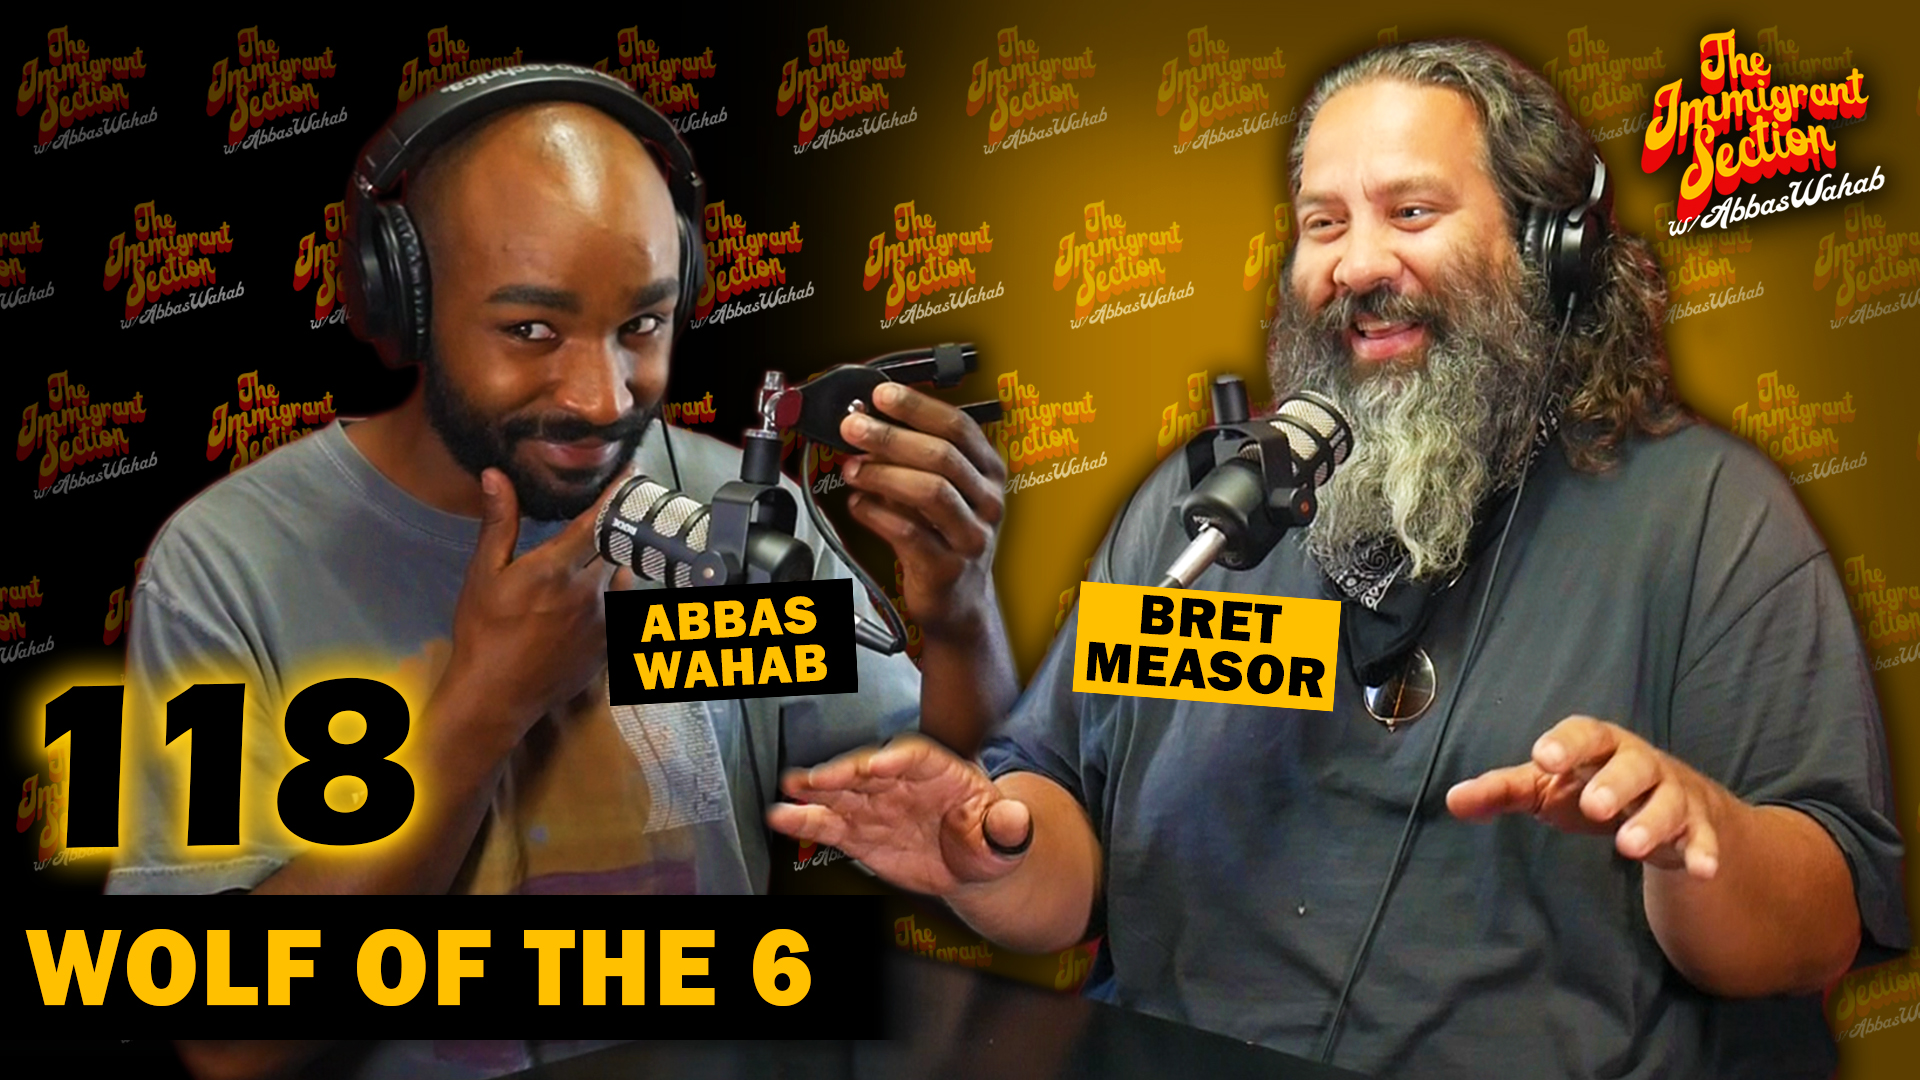 Wolf of The 6 | The Immigrant Section with Abbas Wahab - 118